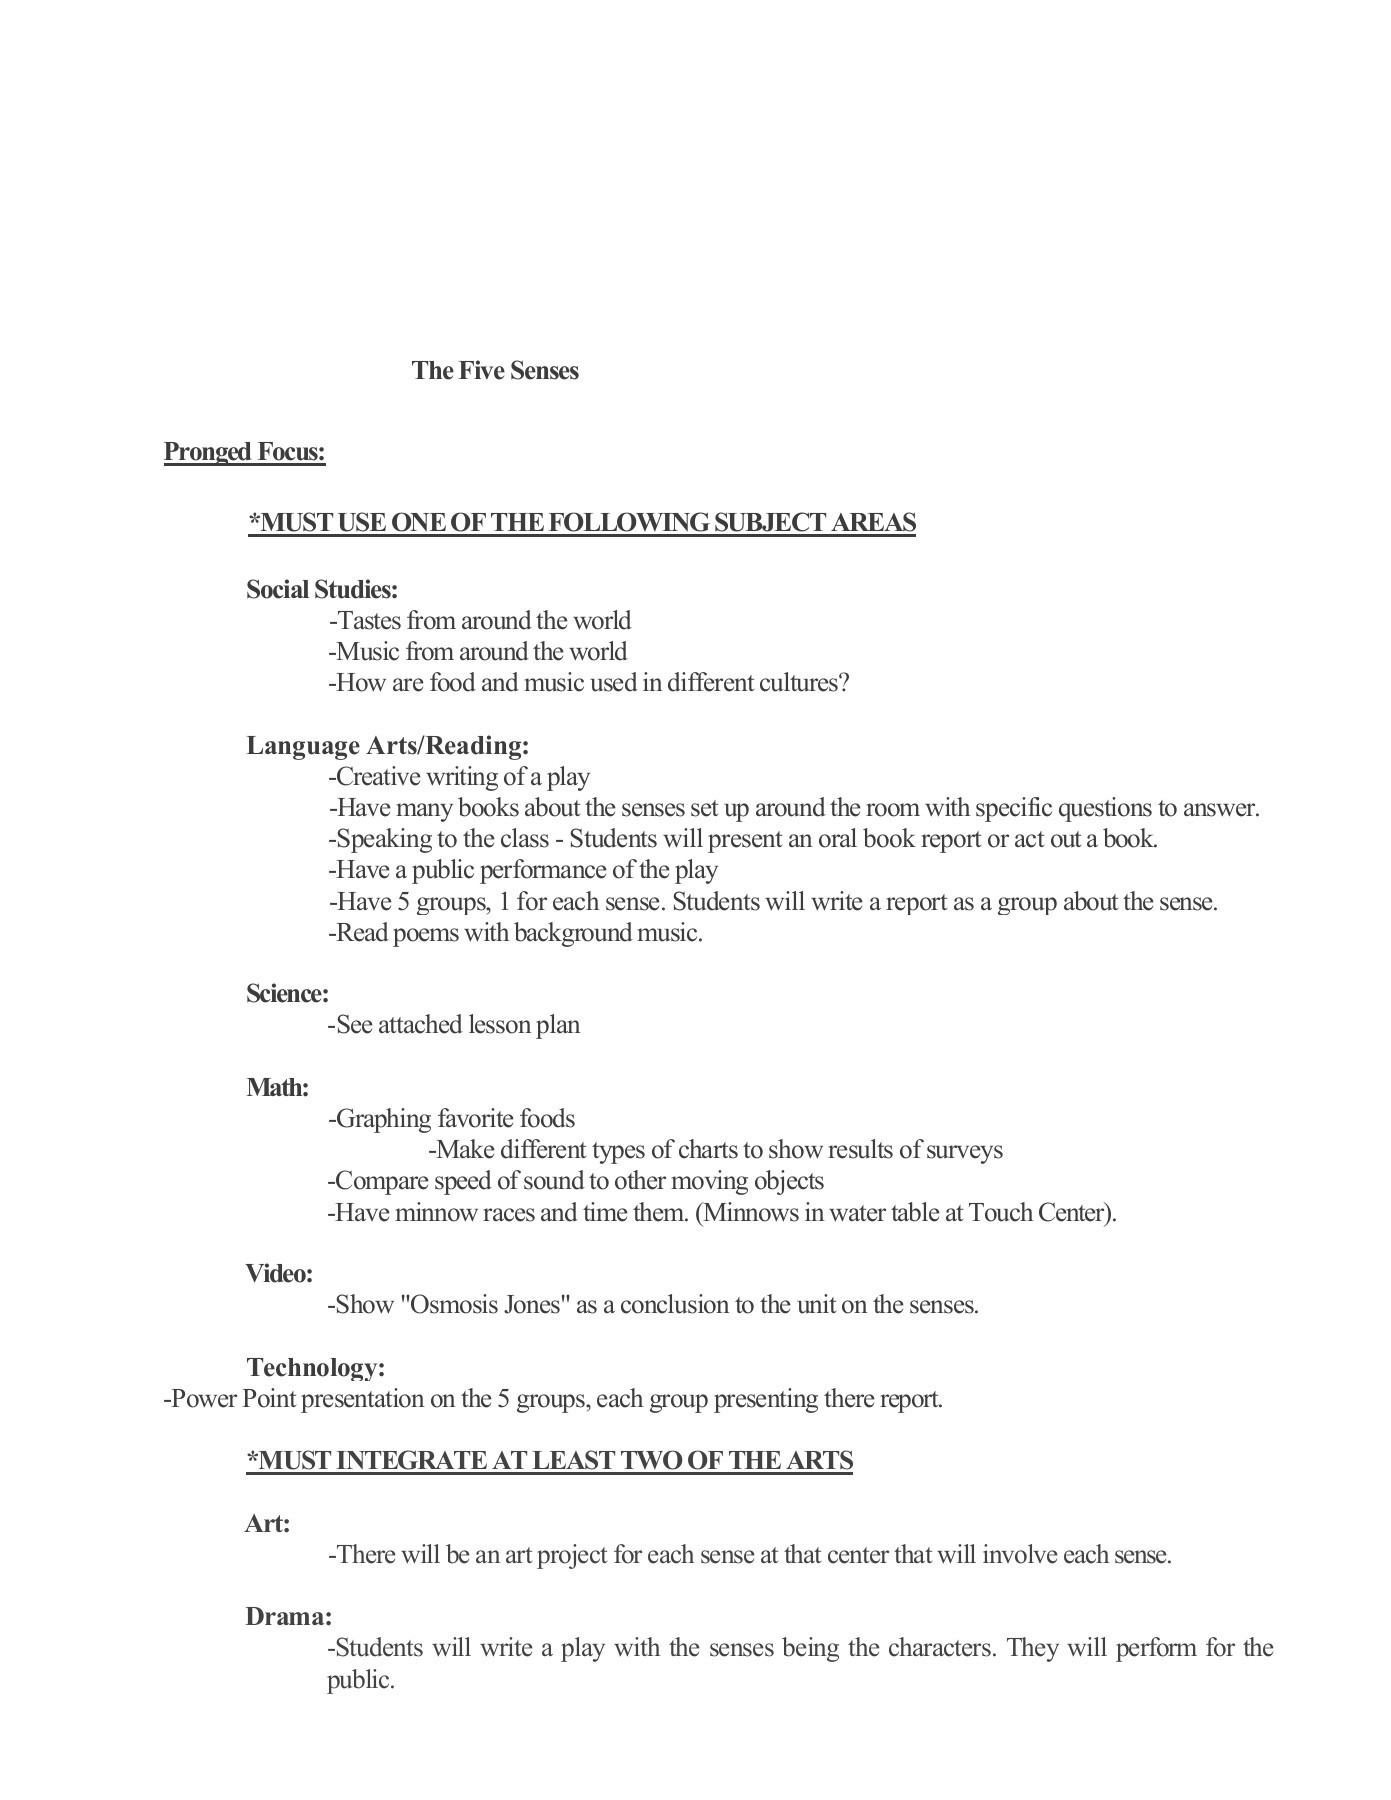 Osmosis Jones Video Worksheet Answers the Five Senses Pronged Focus Must Use One Of the